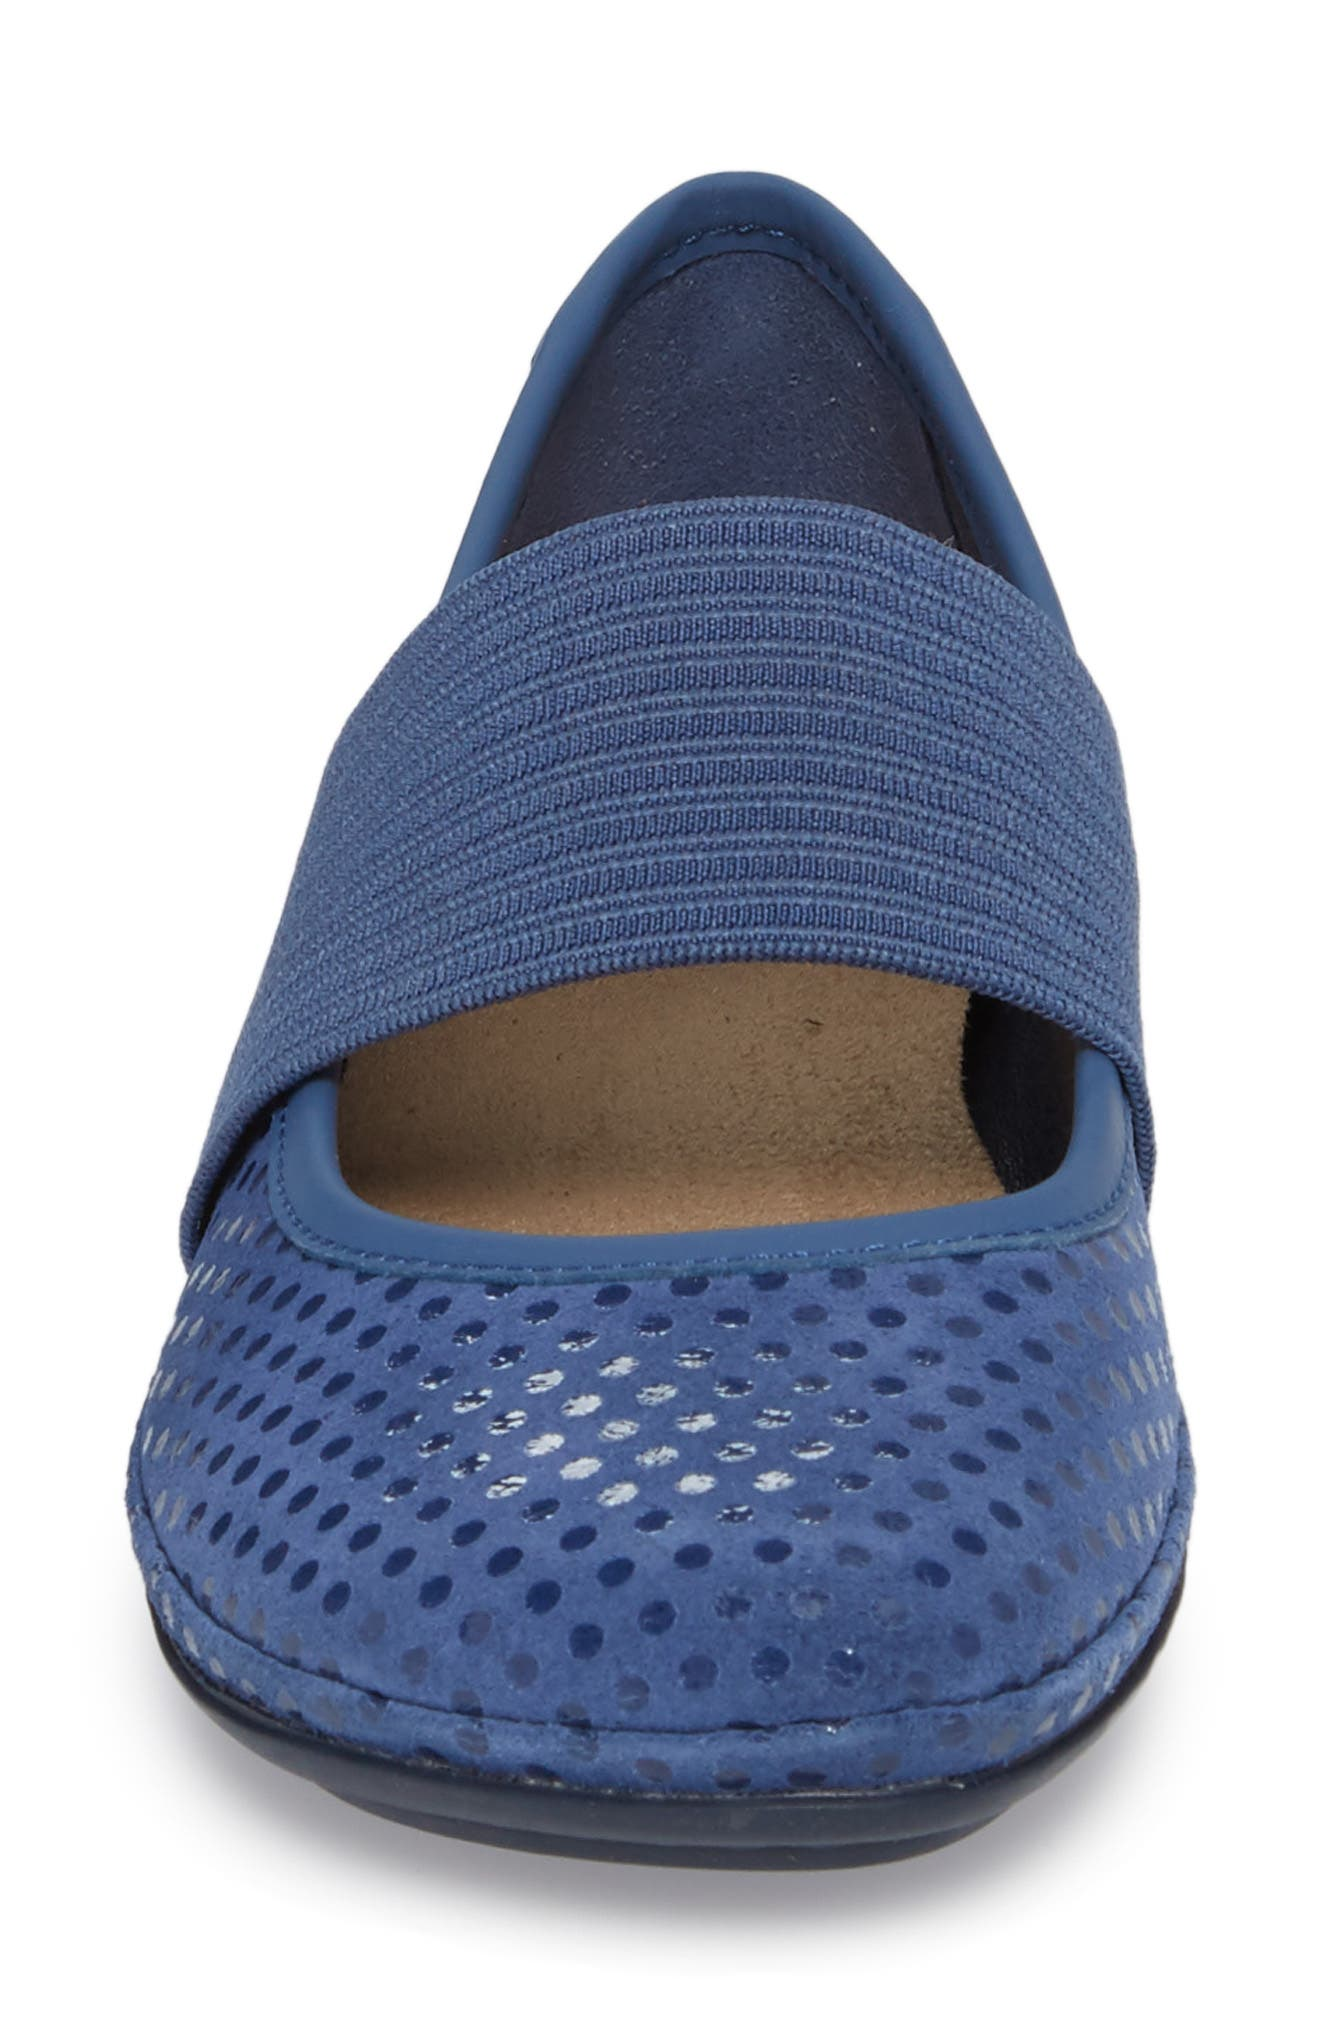 Right Nina Ballerina Flat,                             Alternate thumbnail 4, color,                             Medium Blue Nubuck